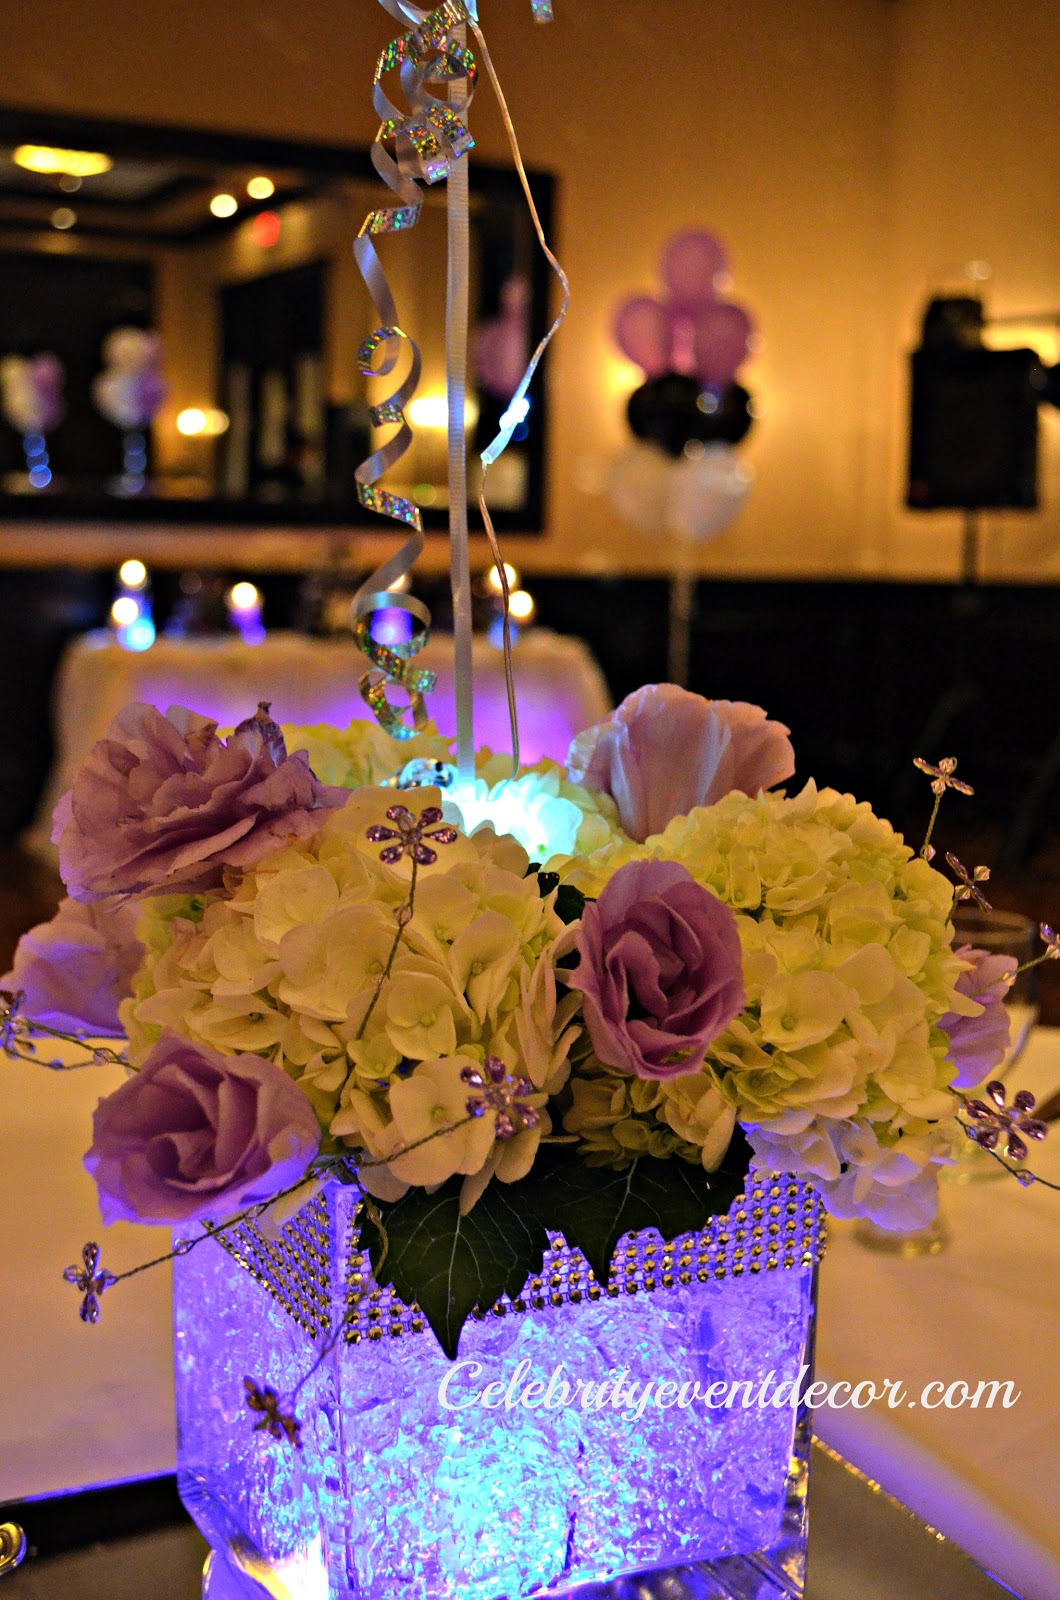 Sweet 16 Table Decoration Ideas table centerpiece ideas for sweet 16 party sweet 16 table decorations table designs quinceanera table Tuesday October 23 2012 Sweet 16 Decorations